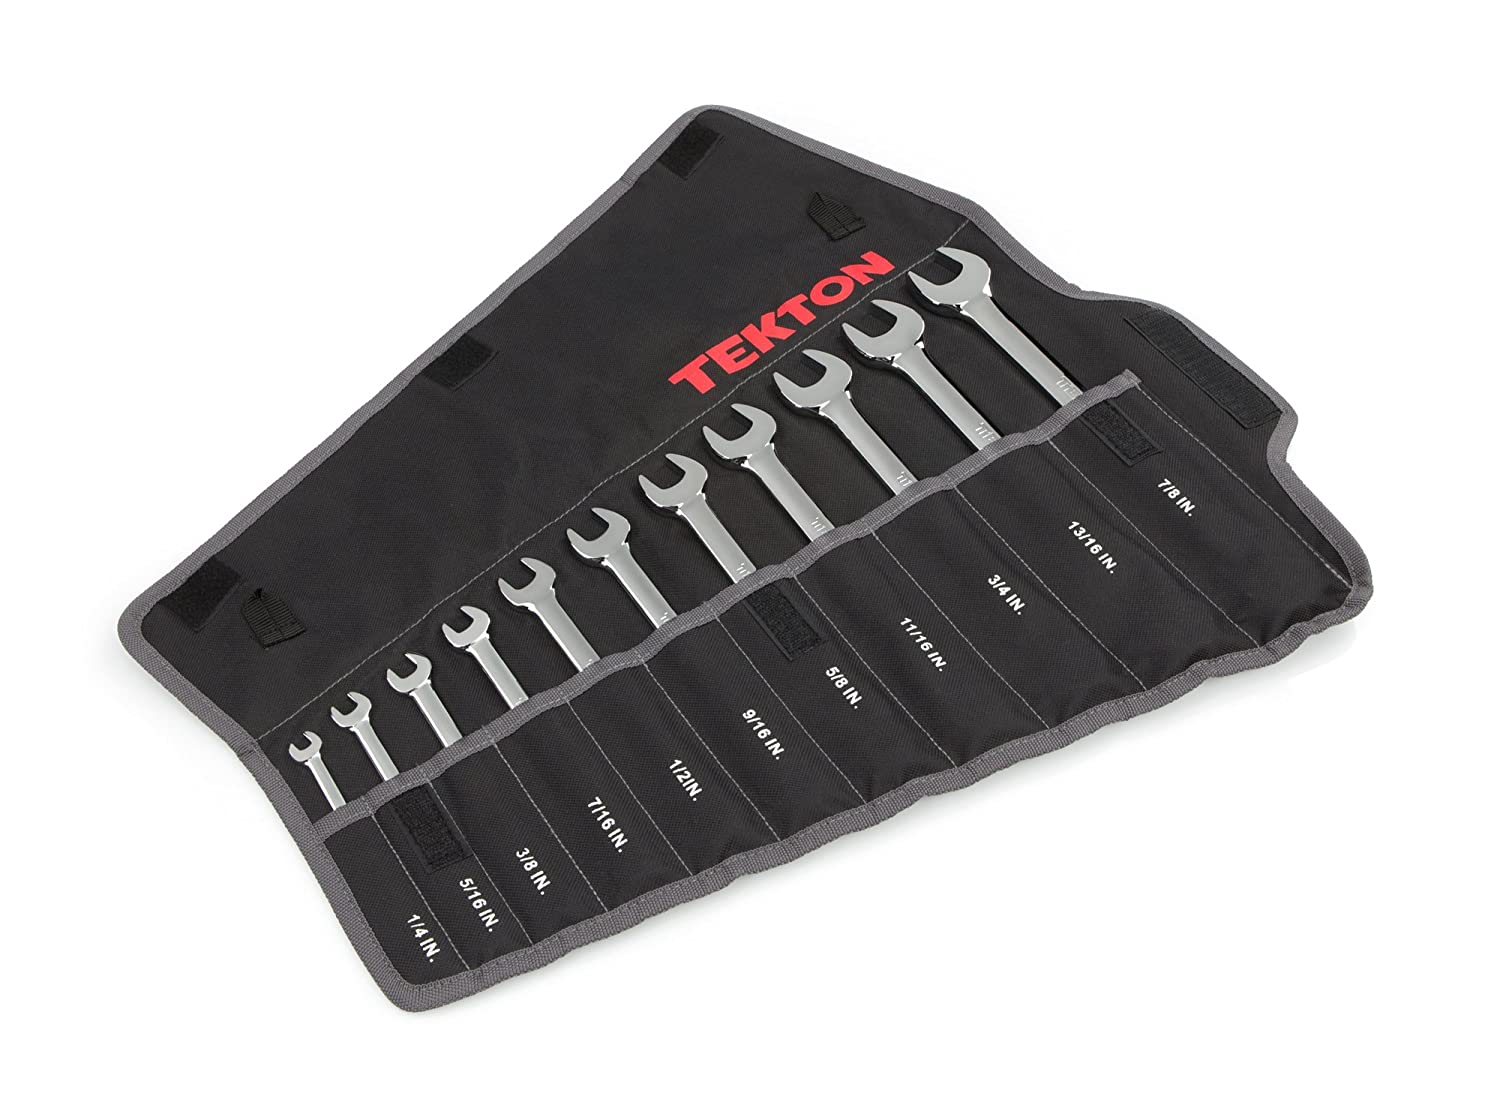 TEKTON Combination Wrench Set with Roll-up Storage Pouch, Metric, 8 mm - 19 mm, 11-Piece | WRN03389 Michigan Industrial Tools